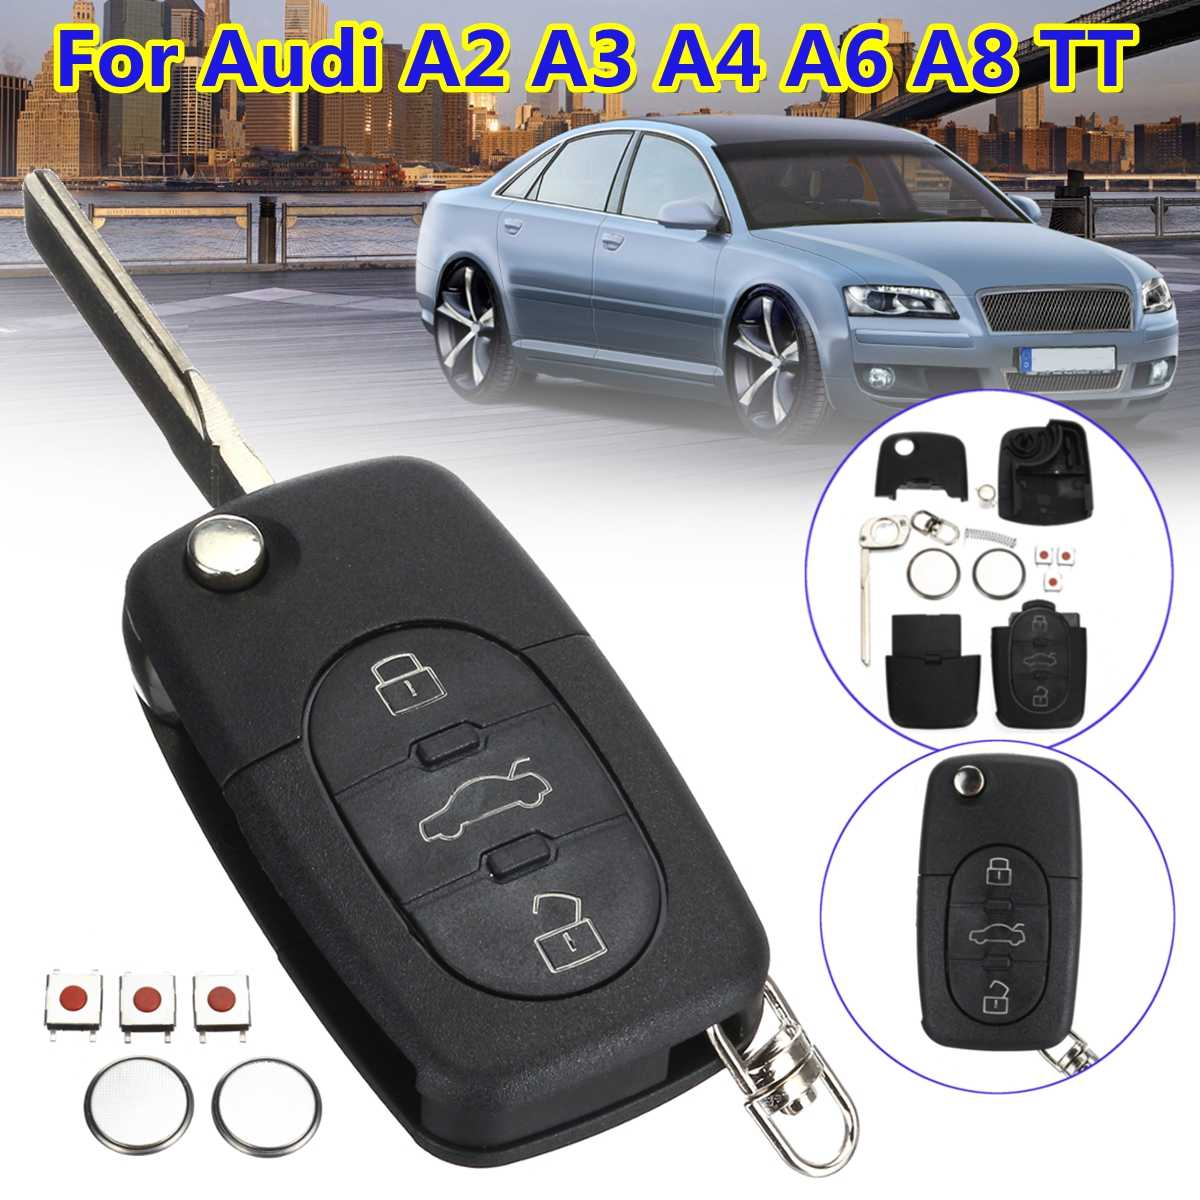 Audi A2 A3 A4 A6 A8 TT 3 Button Remote Key Fob Case Service Repair Kit